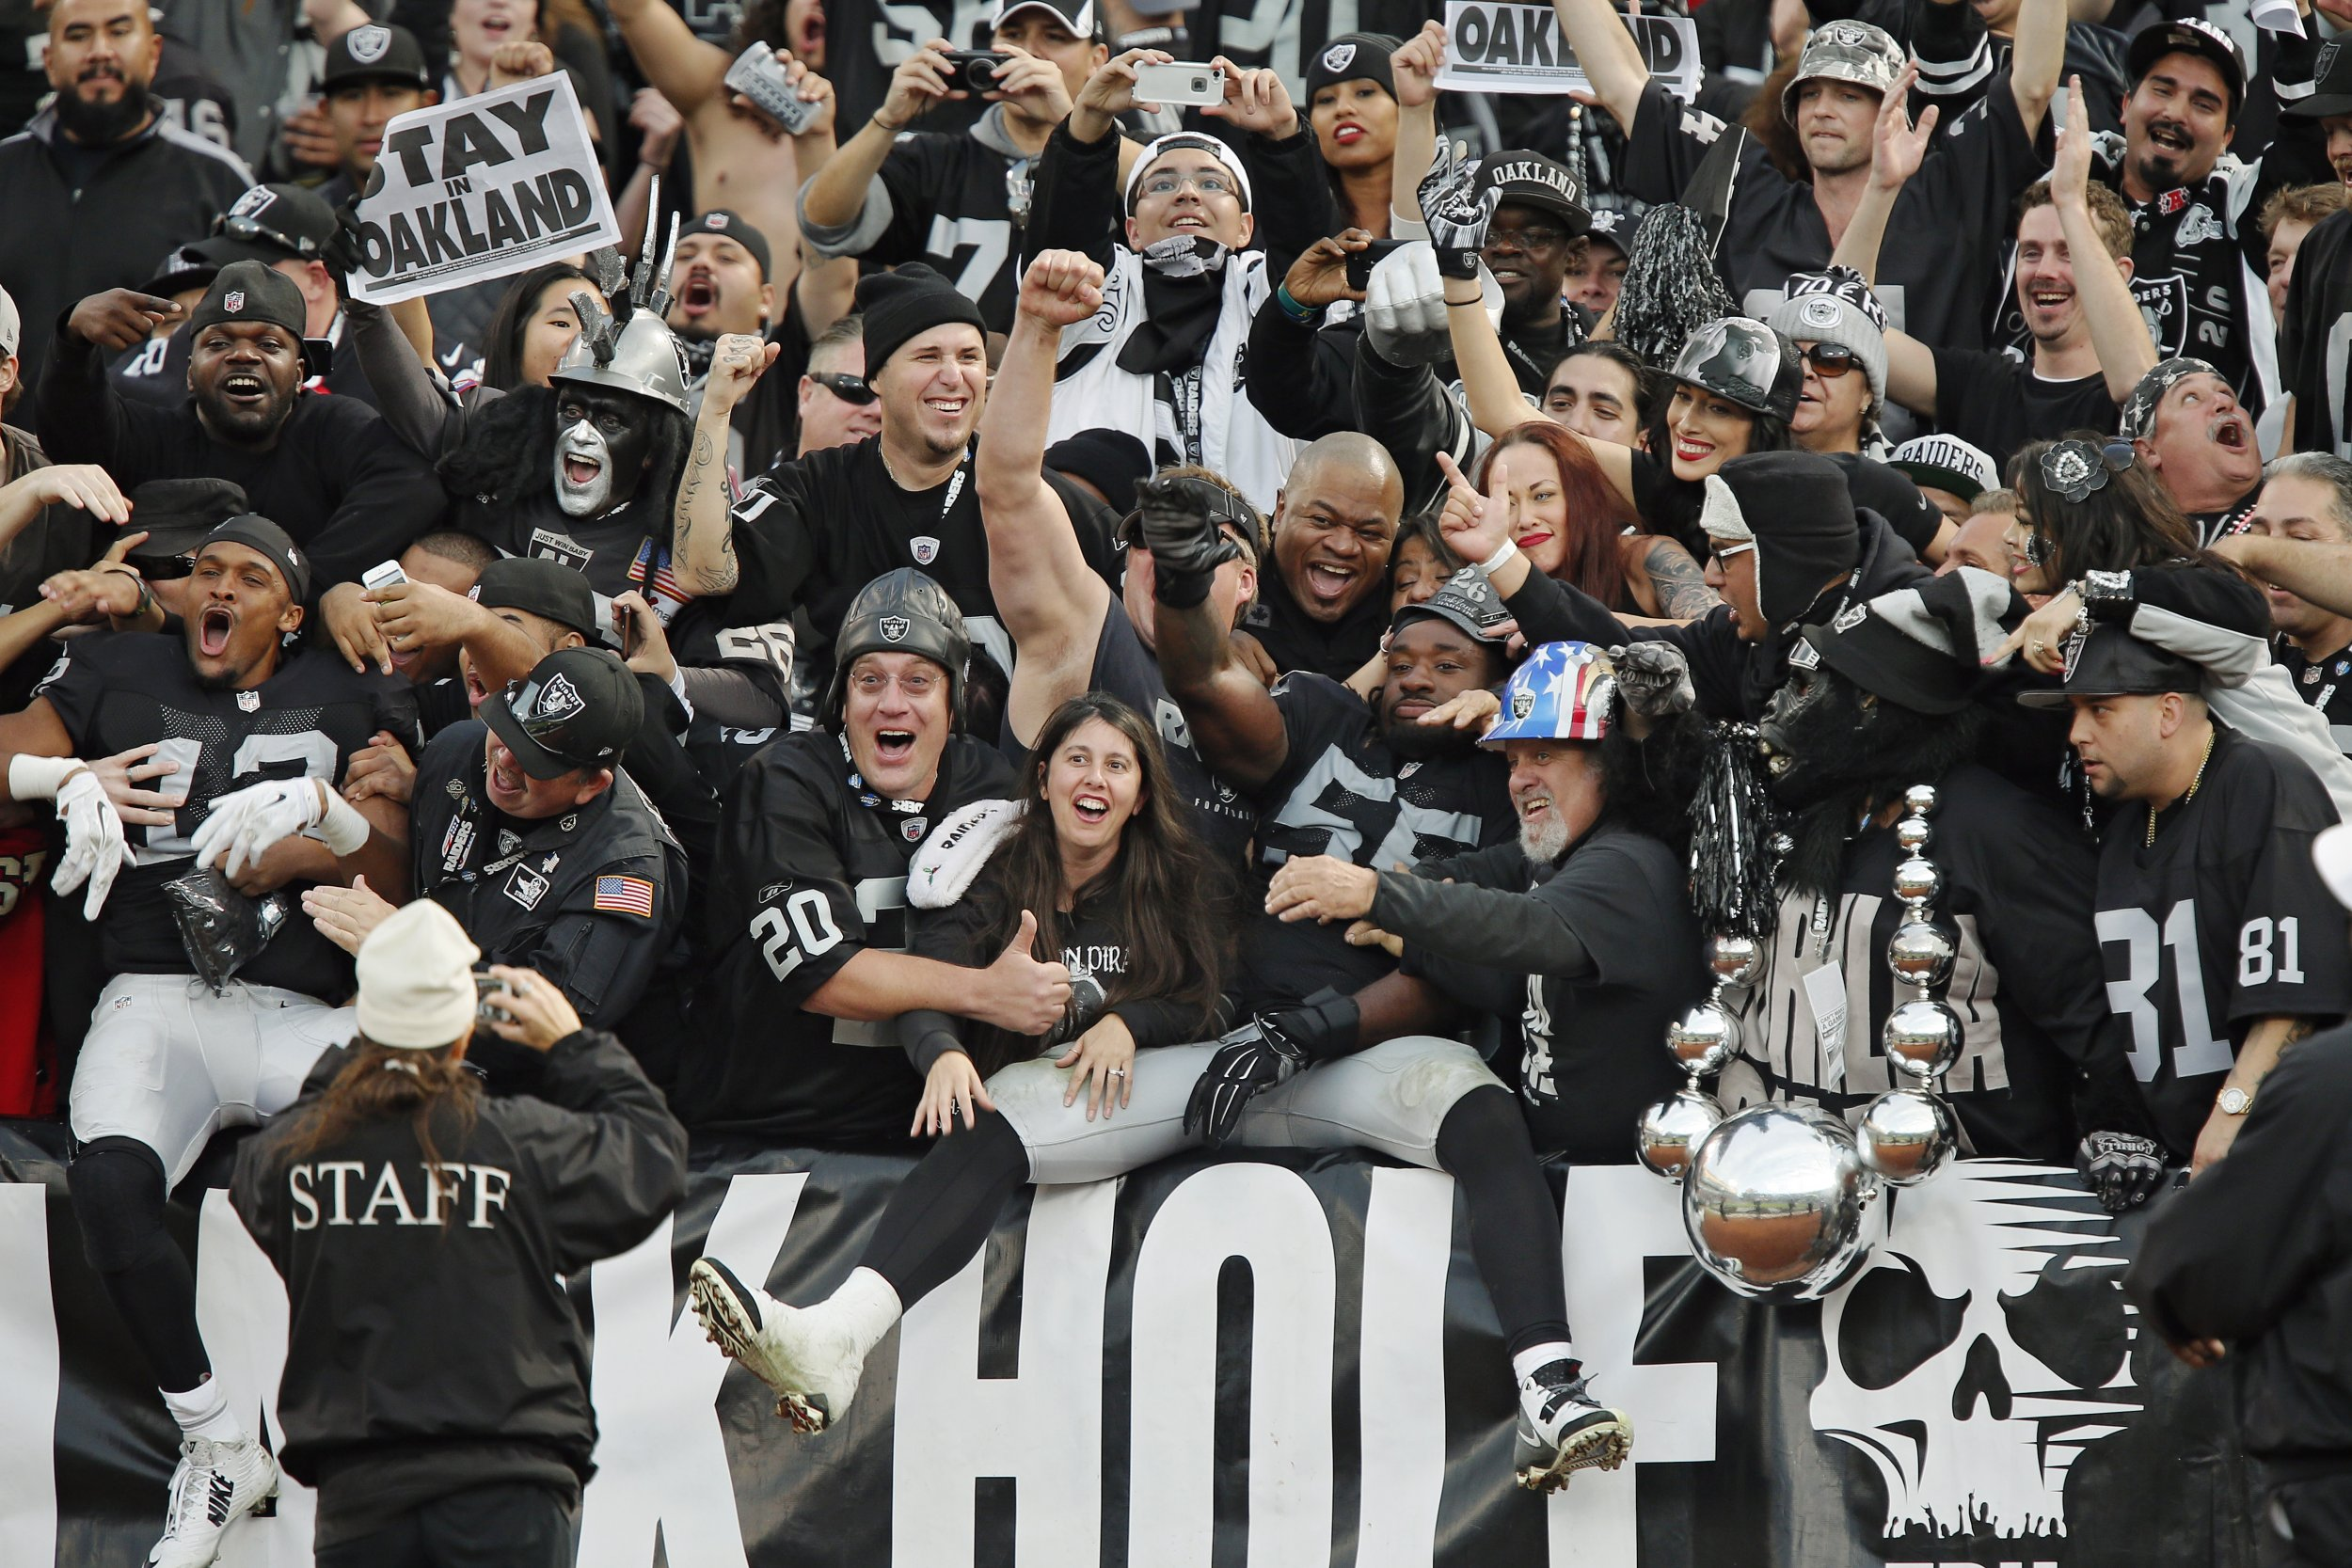 Oakland Raiders Black Hole Fans